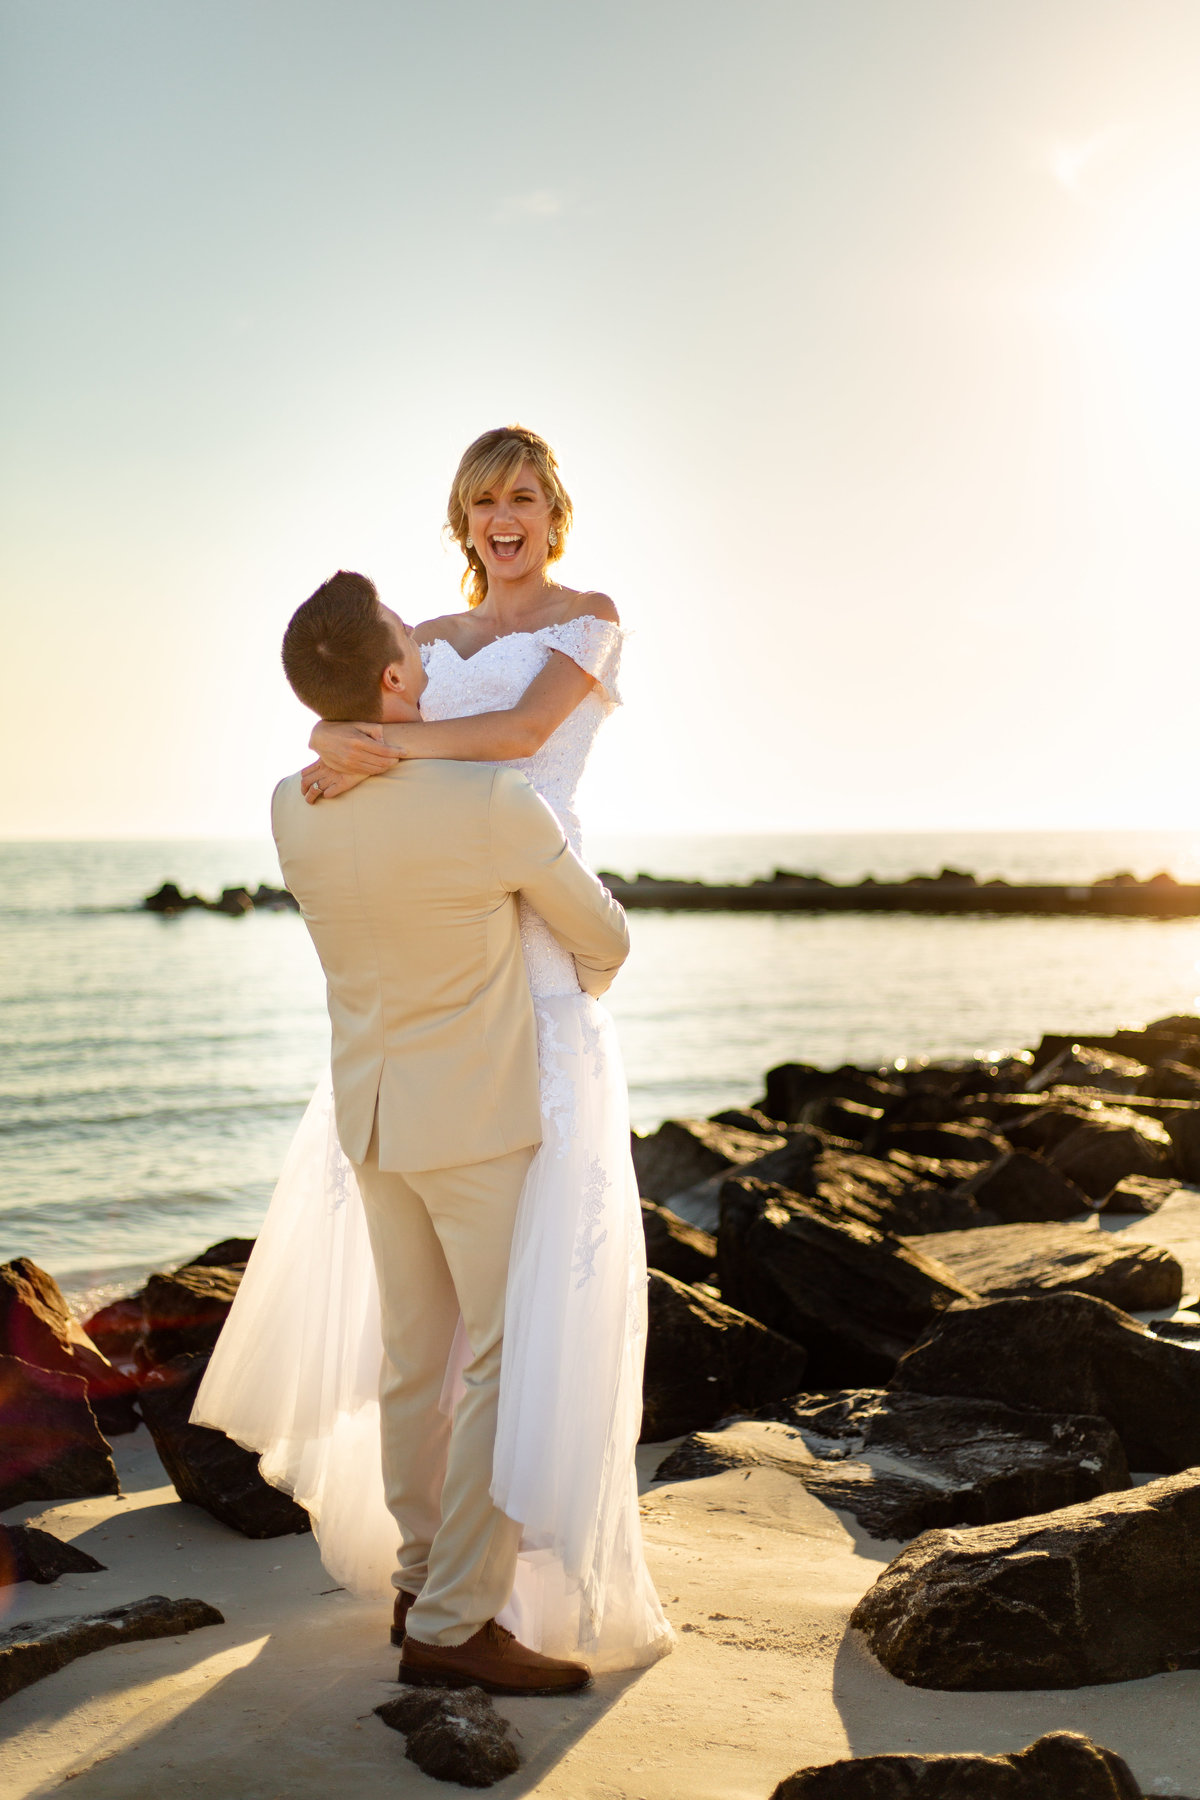 Bride joyfully smiles at camera on Dunedin, Florida during sunset with golden hour glow as her groom in his tan suit lifts her up and spins her romanctically